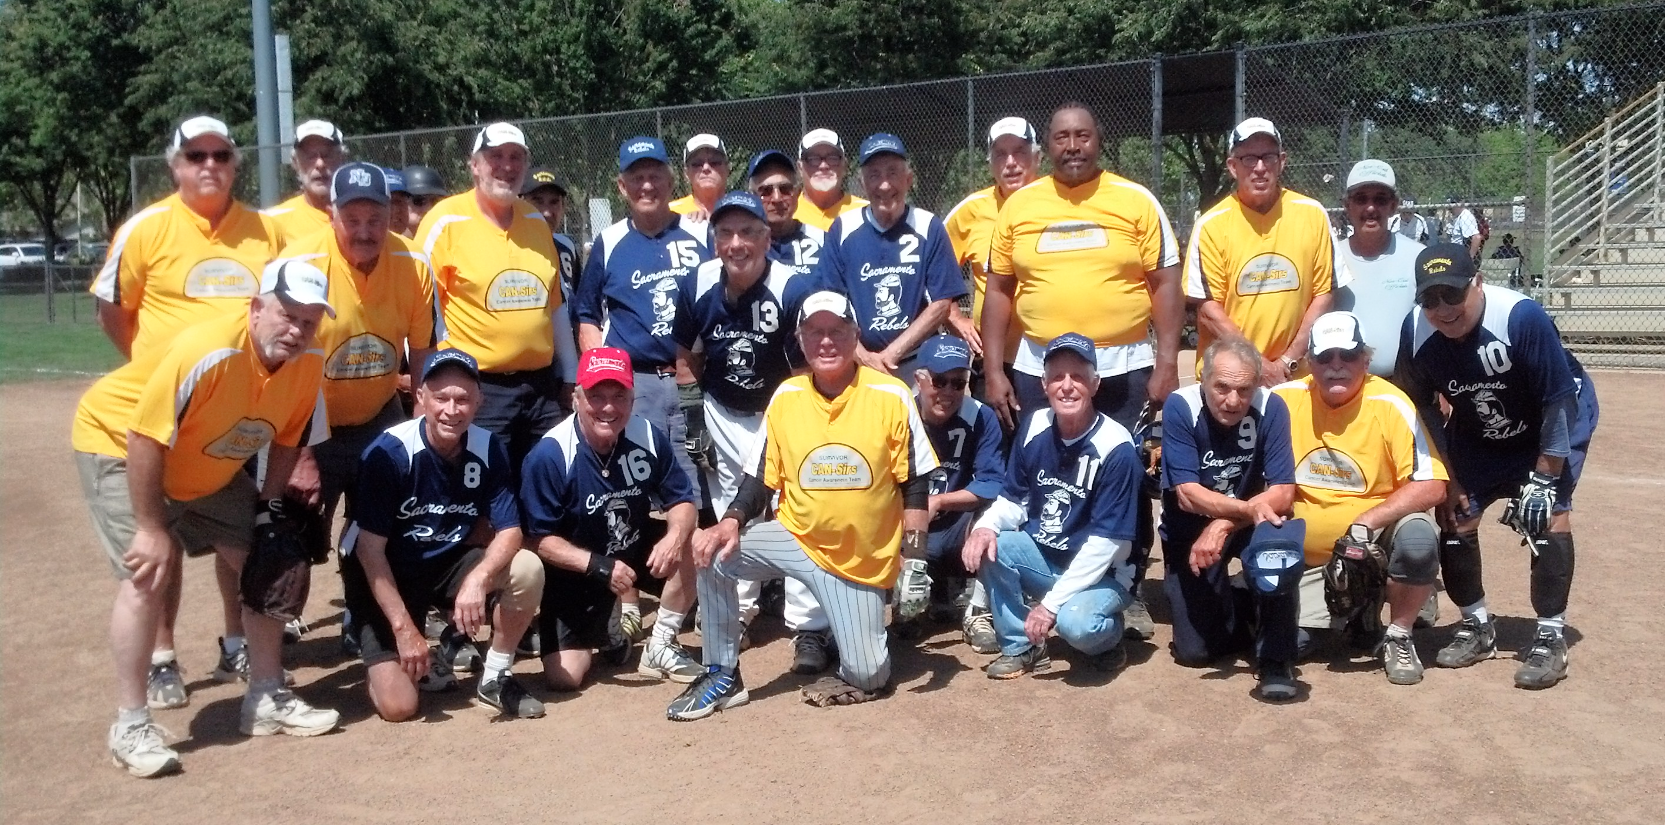 CAN-Sirs and Sac Rebels Elk Grove 2015.jpg